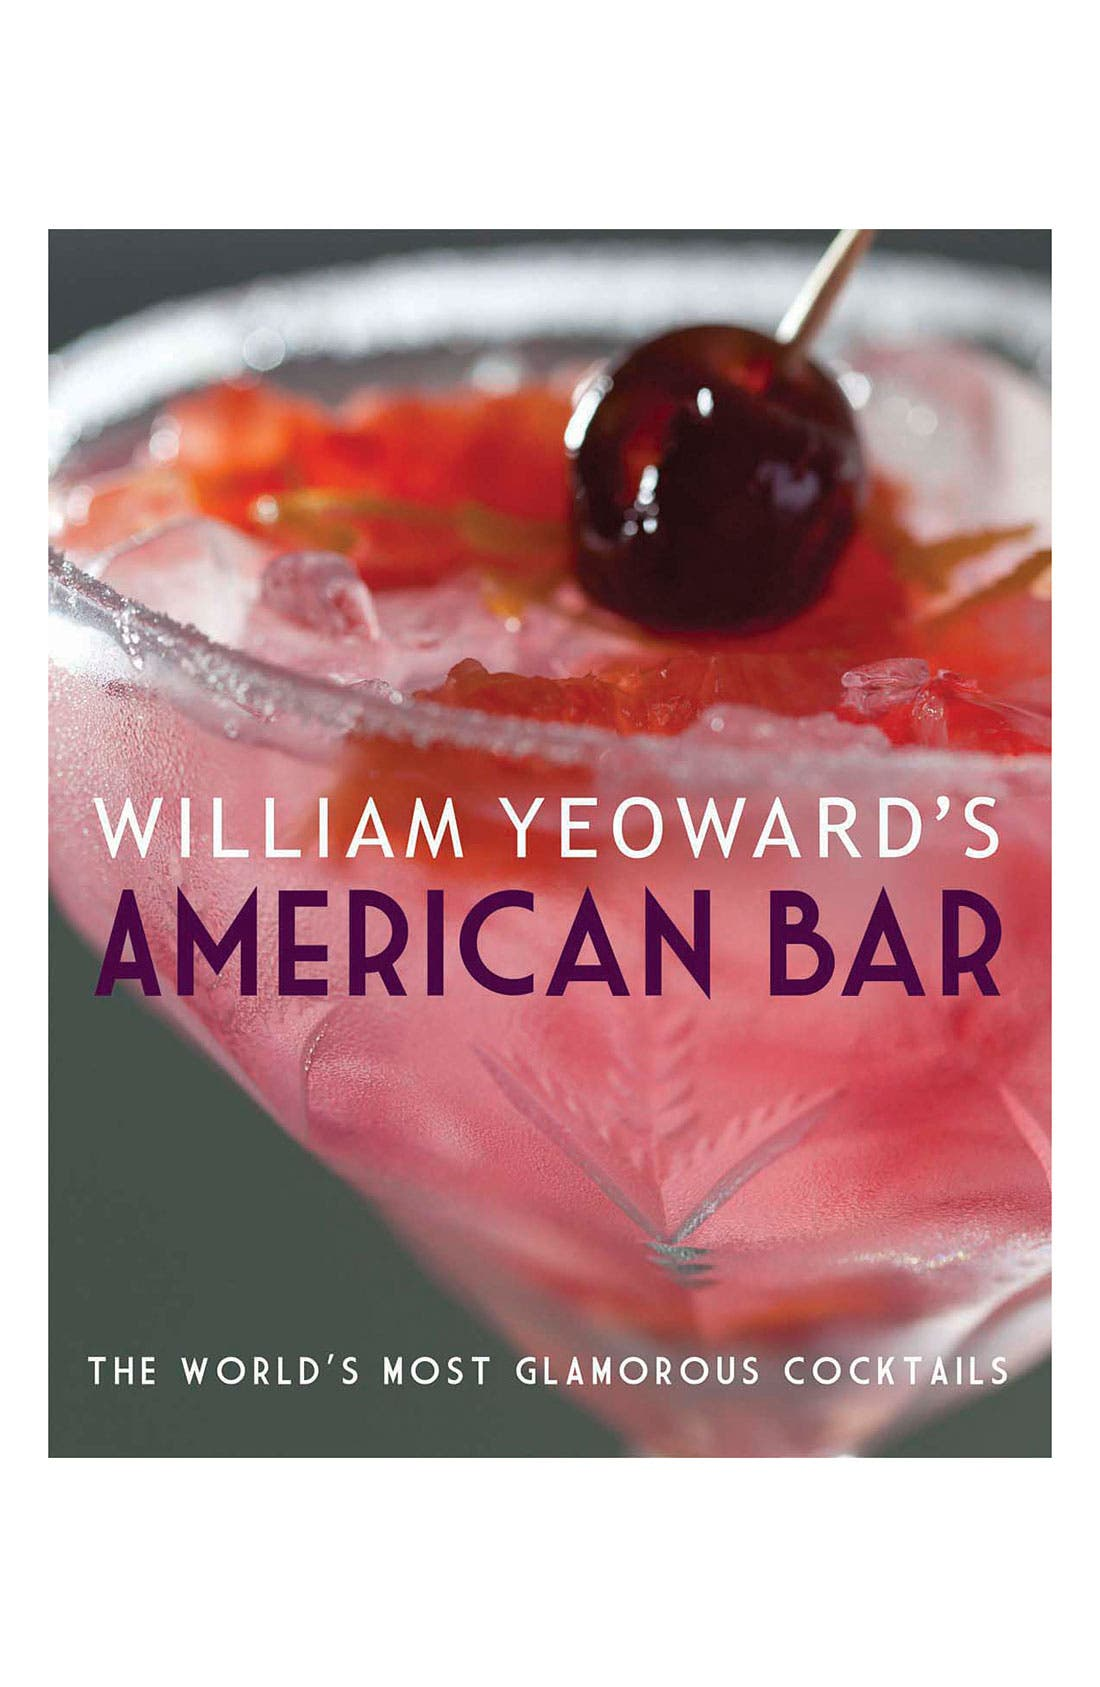 Alternate Image 1 Selected - 'William Yeoward's American Bar' Drink Book